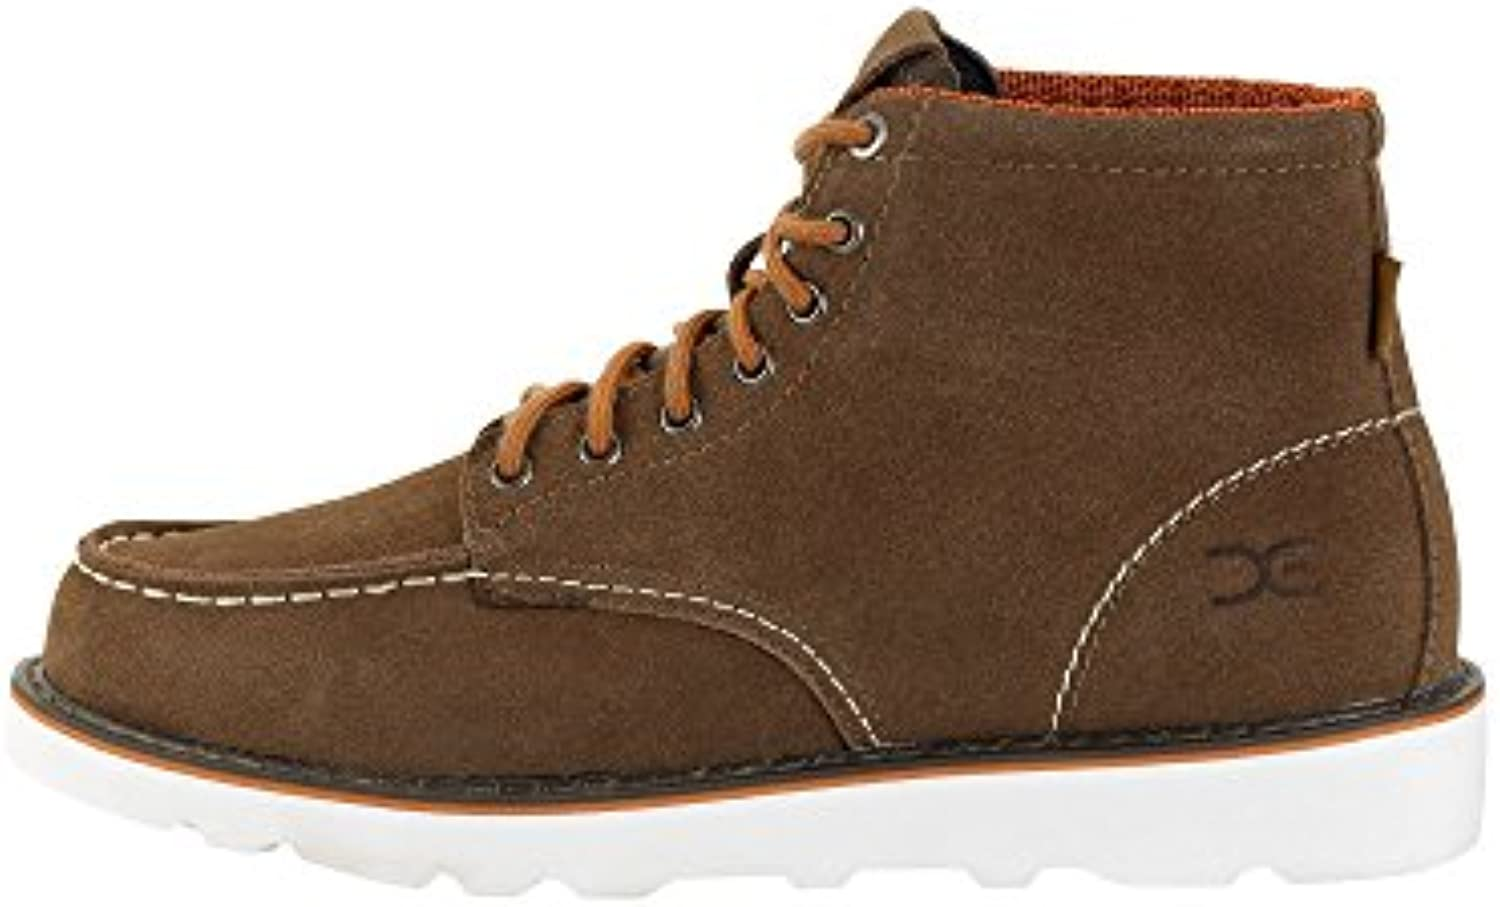 Dude Shoes Men's Rocca Tan Suede Moc Toe Boots UK9 / EU43  -